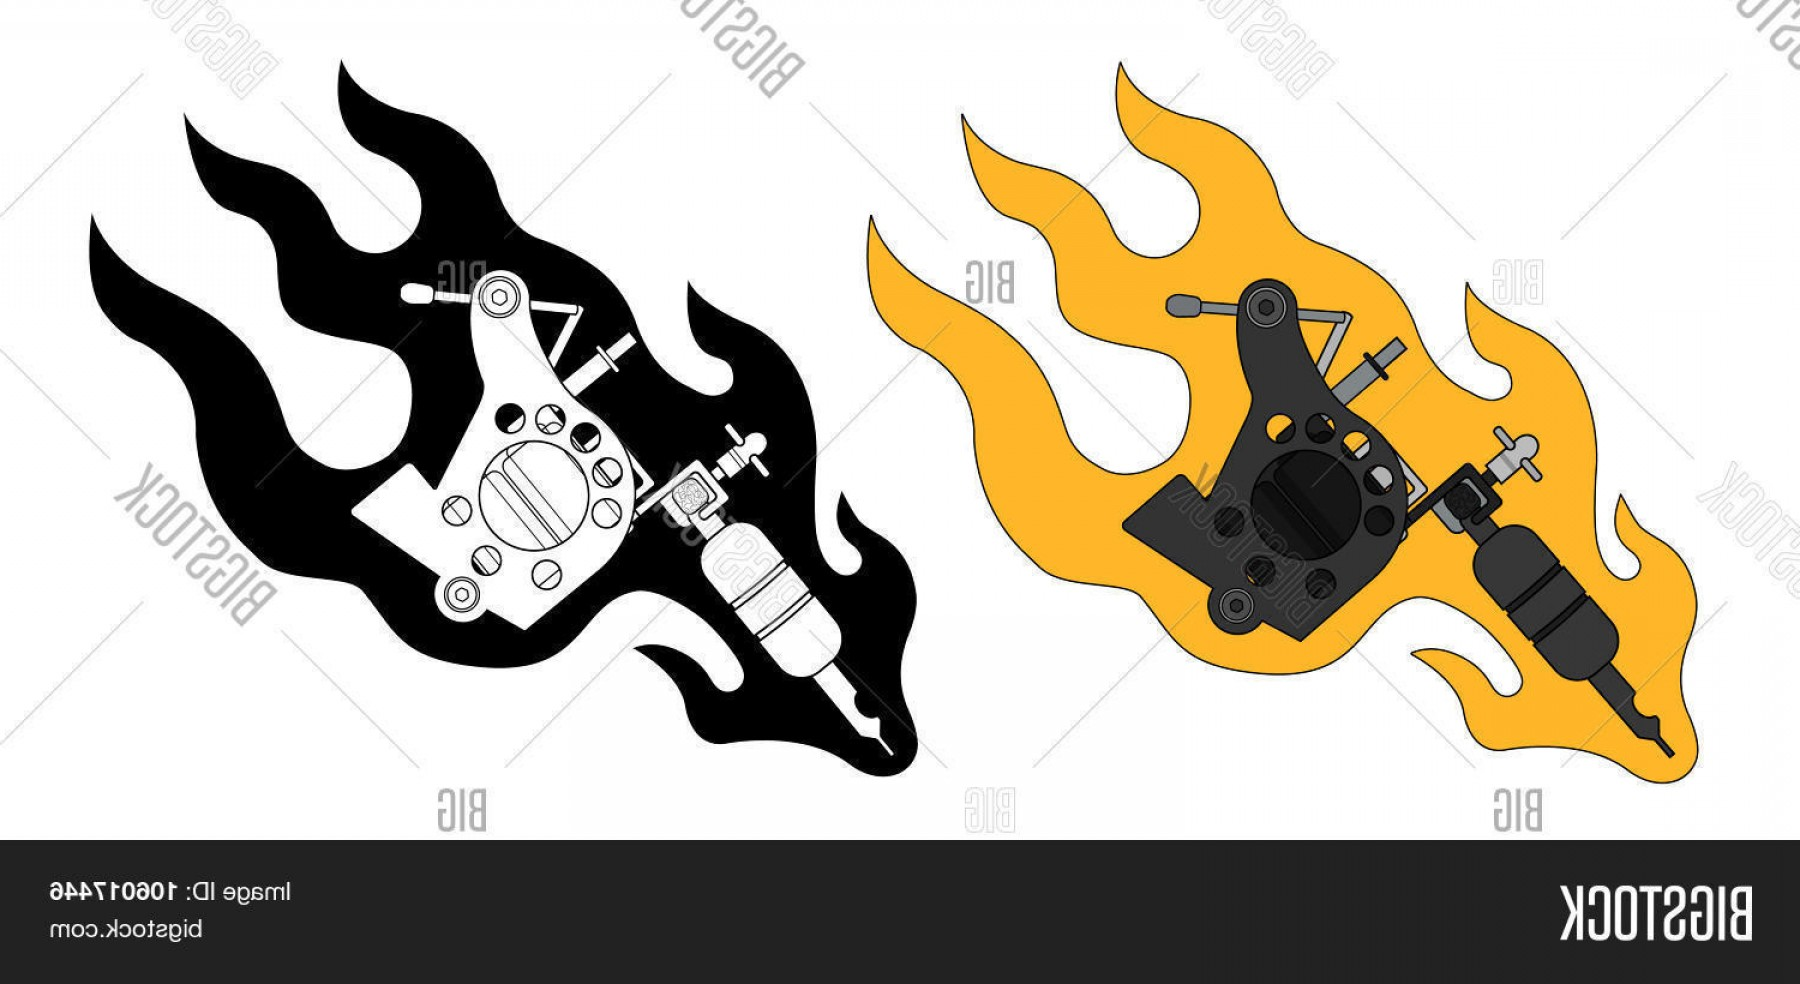 Tattoo Machine Vector Clip Art: Stock Vector Classic Tattoo Machine In Flame Color And Silhouette